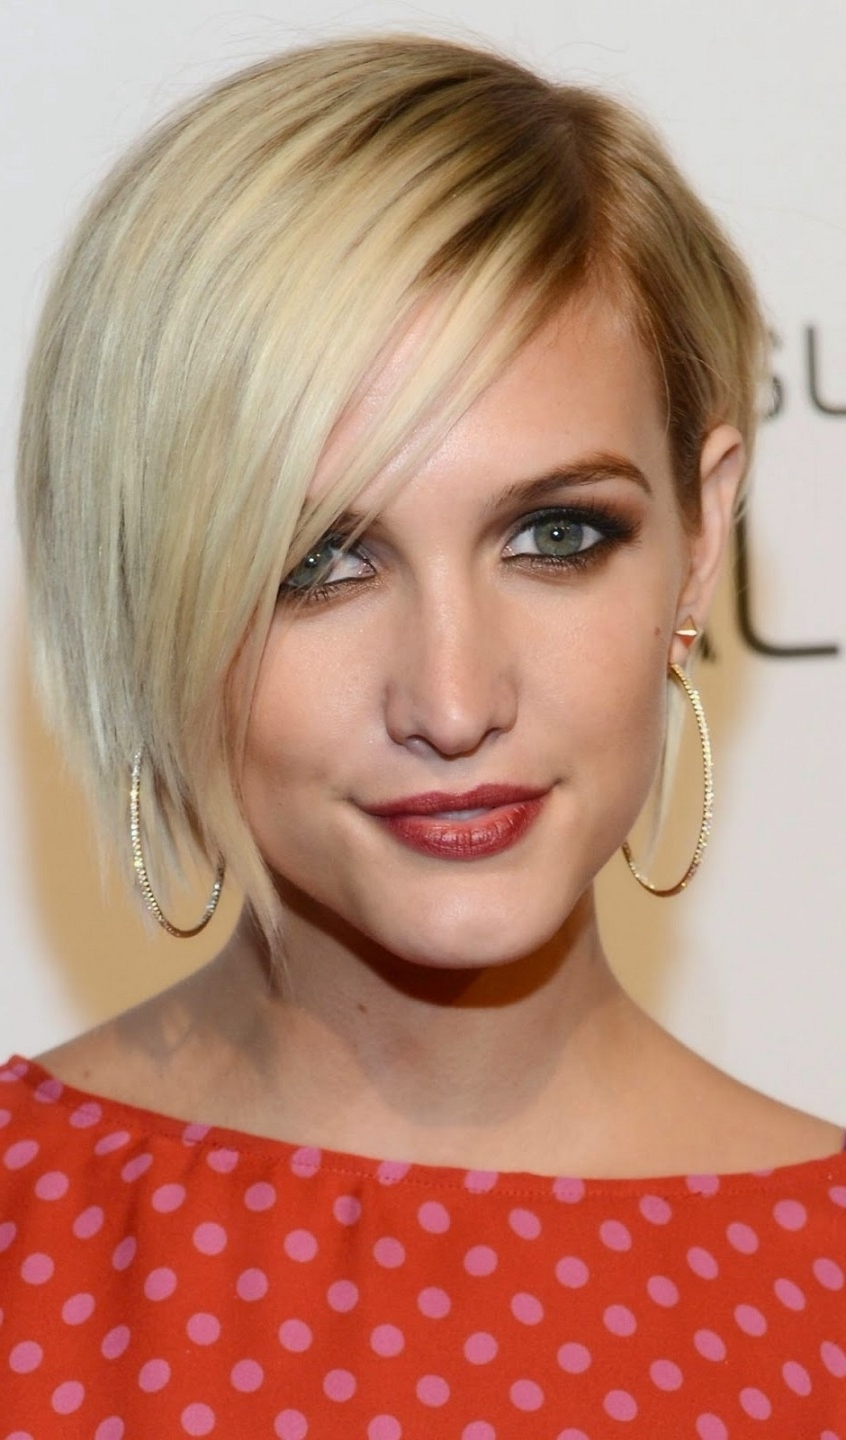 10 Best New Hairstyles For Long Faces Regarding Most Up To Date Pixie Hairstyles For Long Faces (View 14 of 15)